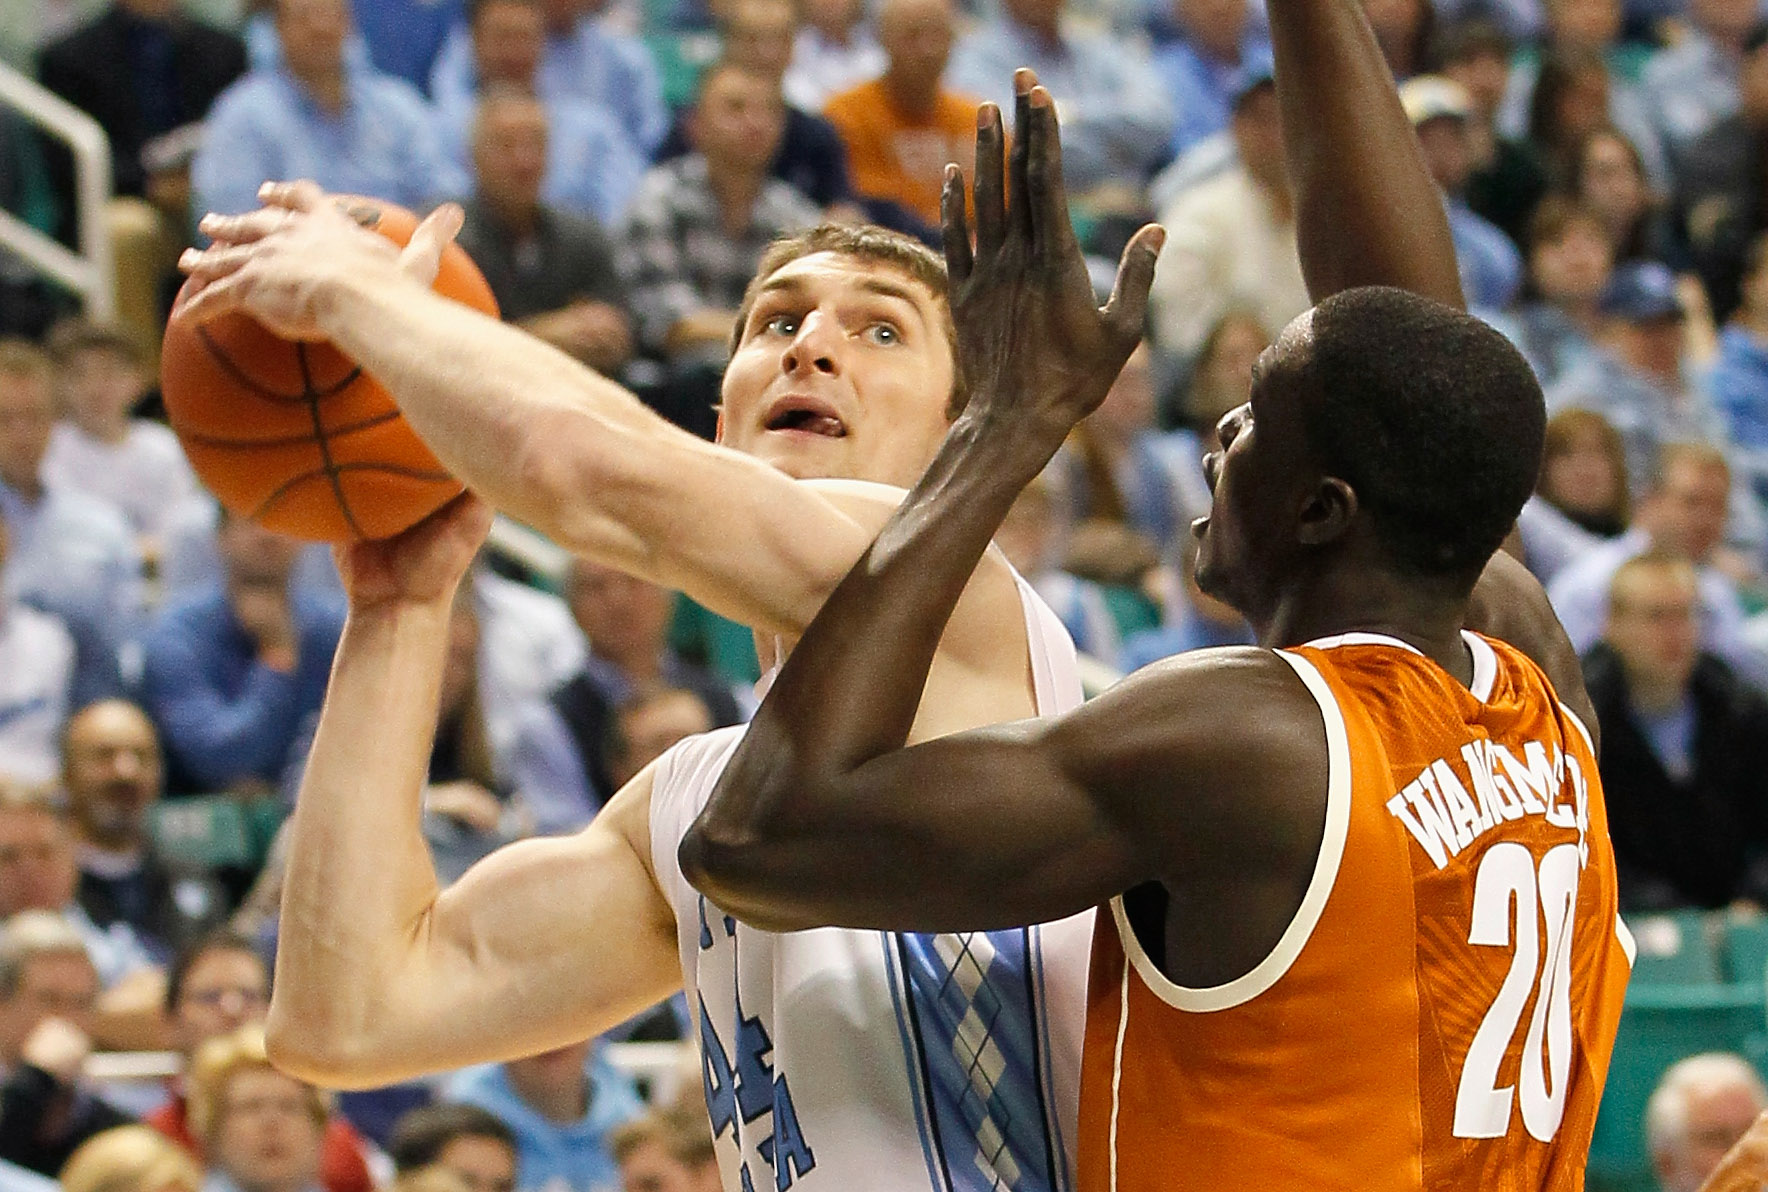 GREENSBORO, NC - DECEMBER 18:  Tyler Zeller #44 of the North Carolina Tar Heels attacks the basket against Alexis Wangmene #20 of the Texas Longhorns at Greensboro Coliseum on December 18, 2010 in Greensboro, North Carolina.  (Photo by Kevin C. Cox/Getty